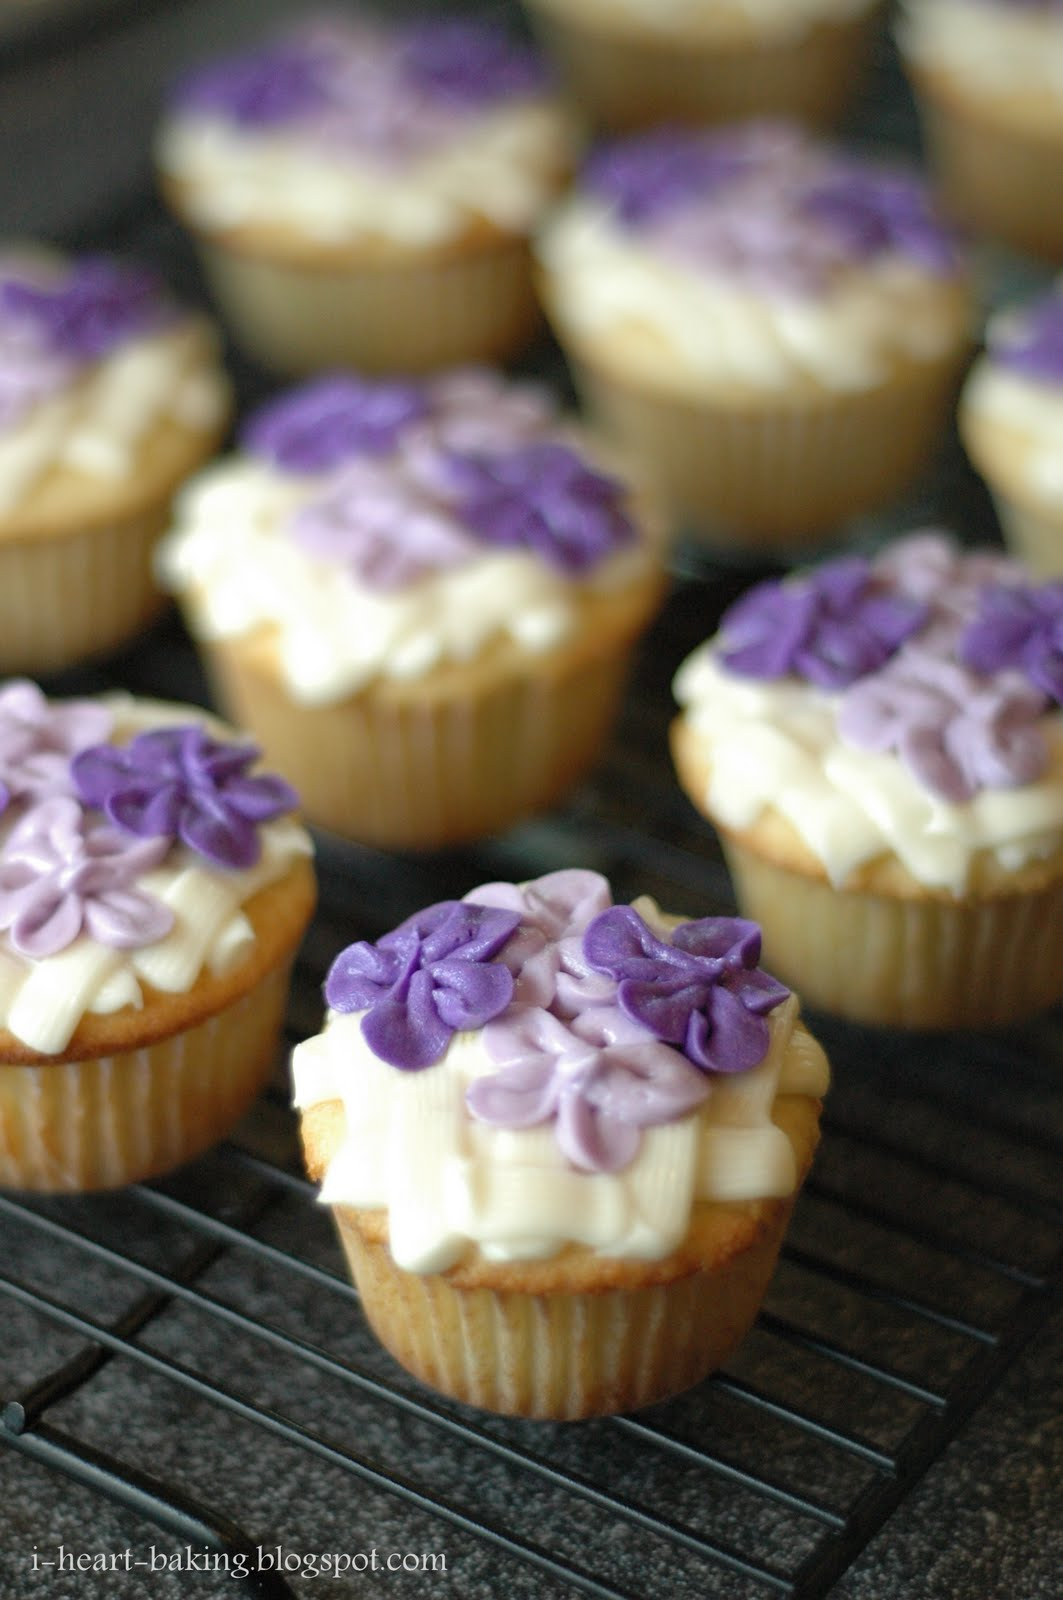 i heart baking!: hydrangea cupcakes - lemon cupcakes with lemon